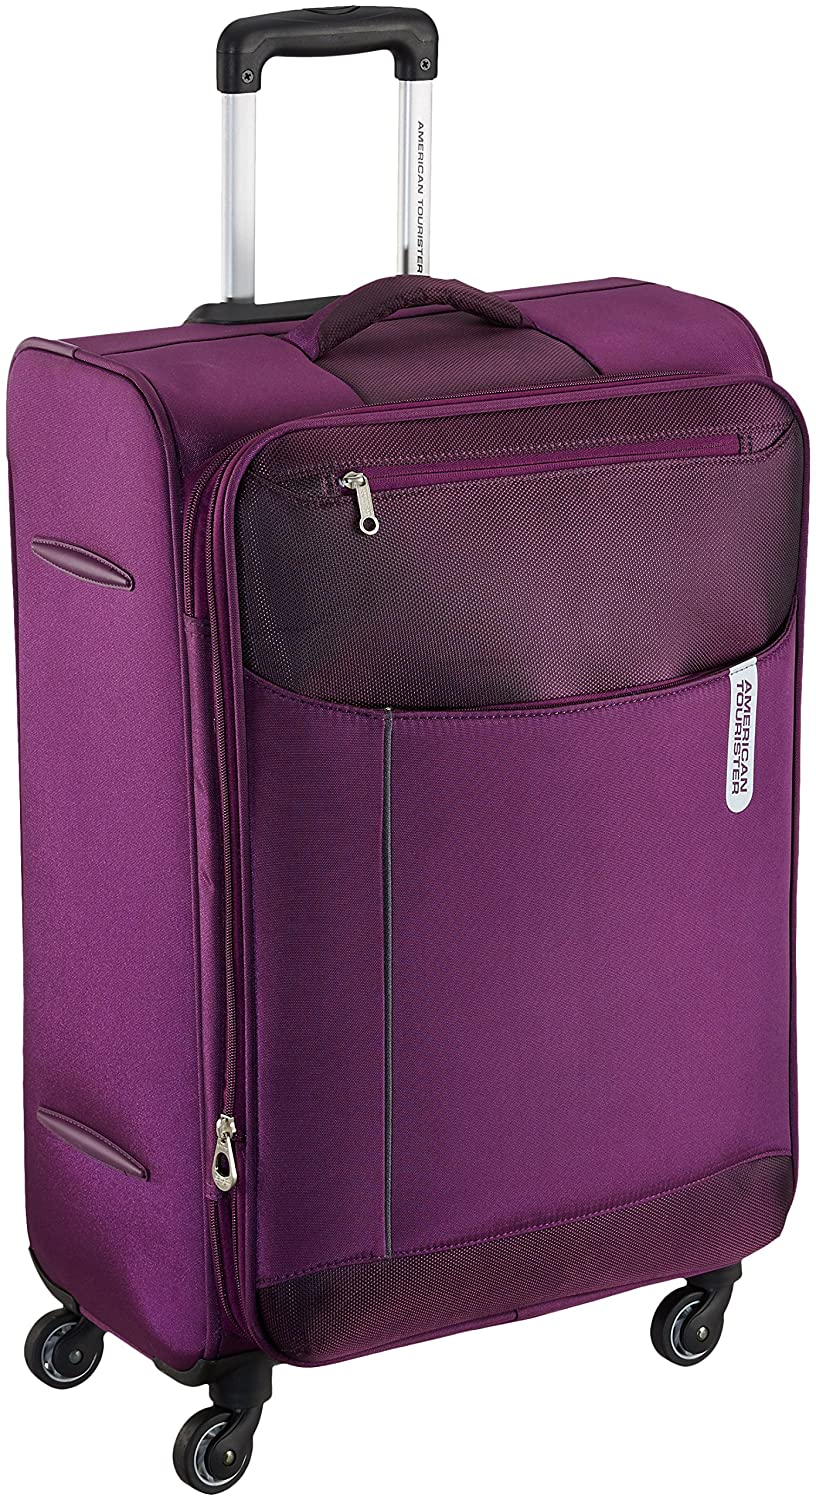 10f50bed6807 American Tourister Portugal Polyester 79 cms Plum Soft Sided Suitcase (AMT  Portugal SP 79CM Plum)  Amazon.in  Bags